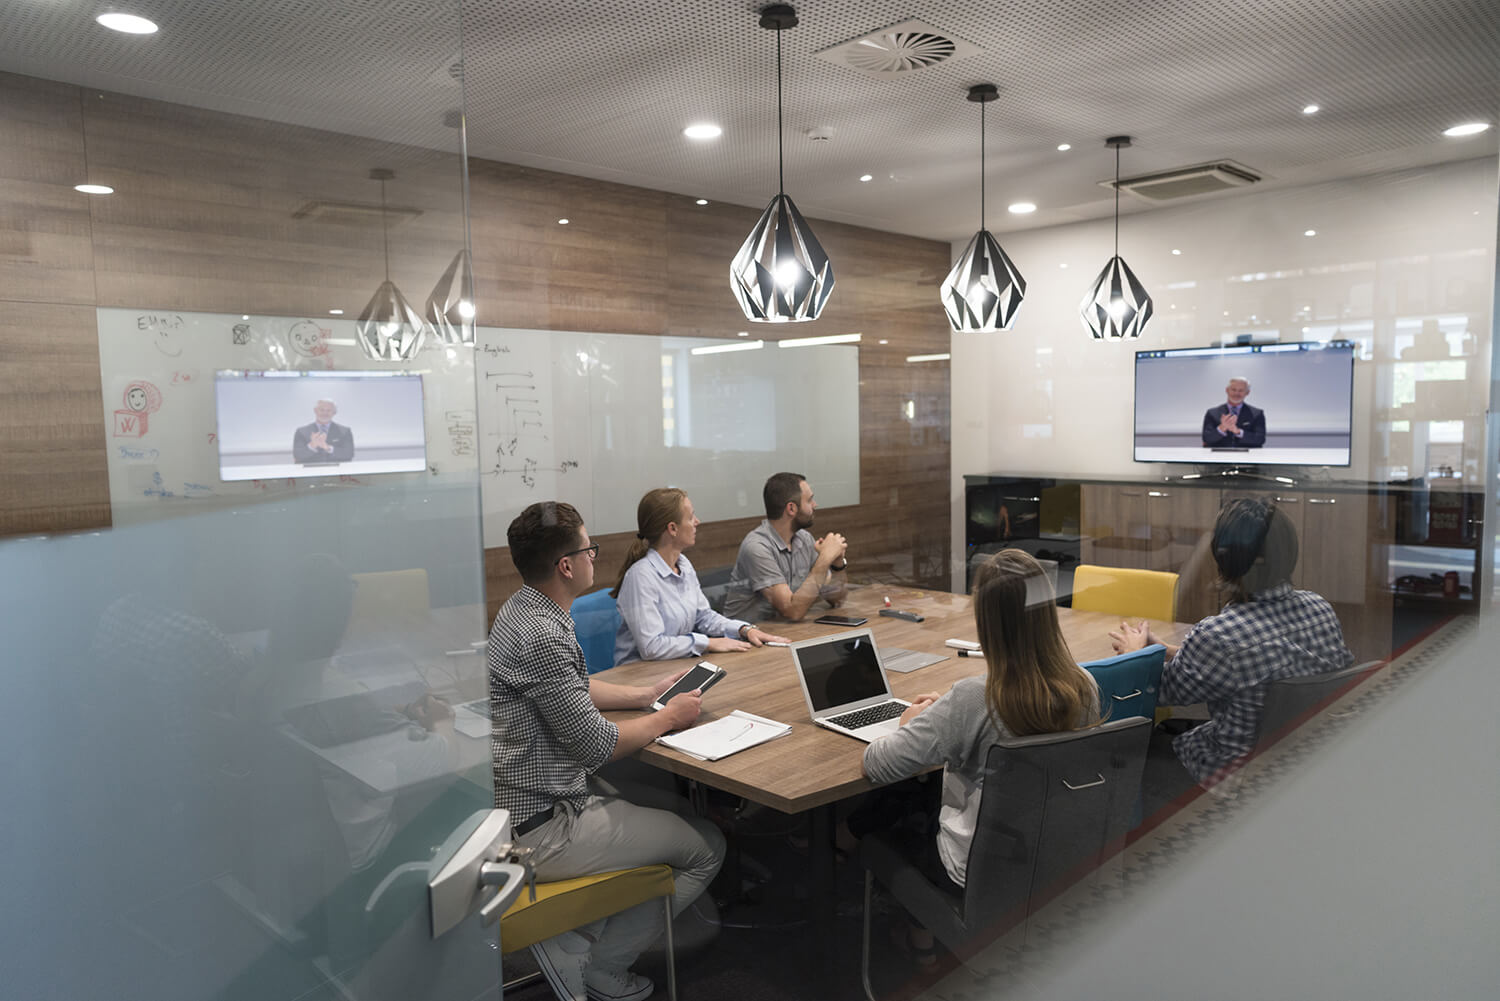 Improved productivity through video conferencing